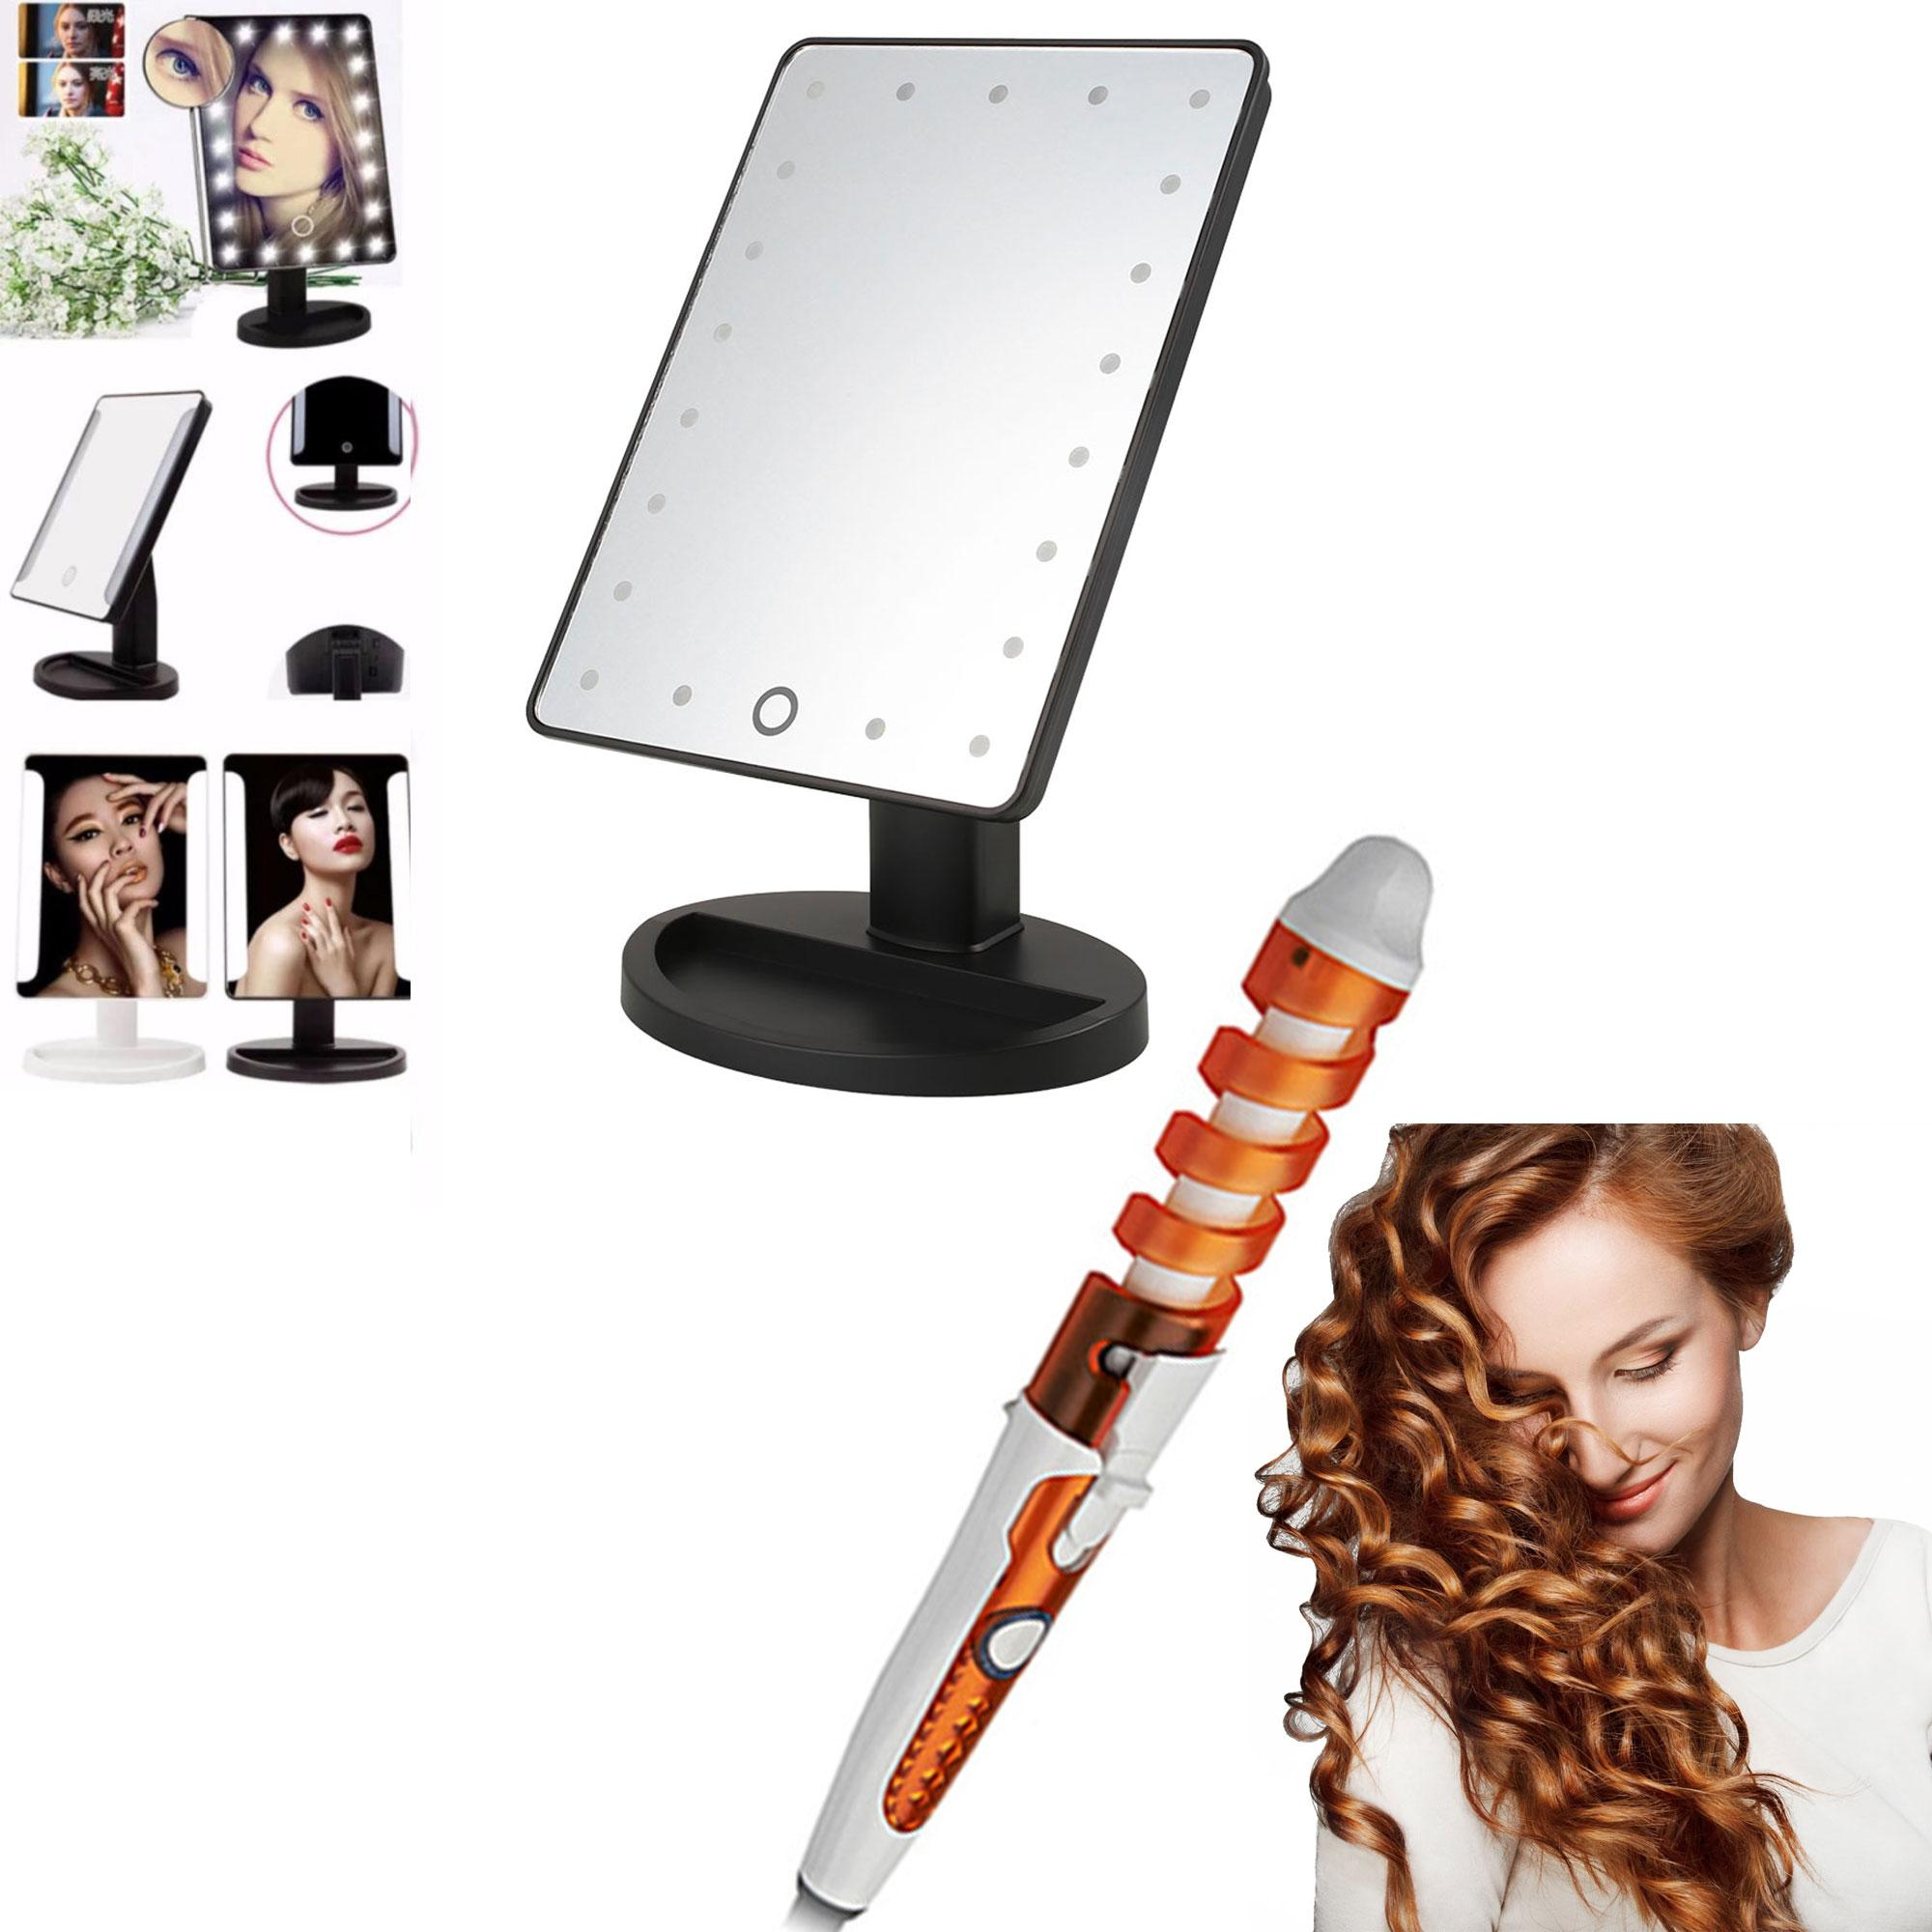 XR-1608 Make Up Vanity Illuminated Desktop Table Makeup Stand Large LED Mirror with 16 LED Light (Black) with RZ-118 Professional Hair Curler (Yellow/White) Philippines